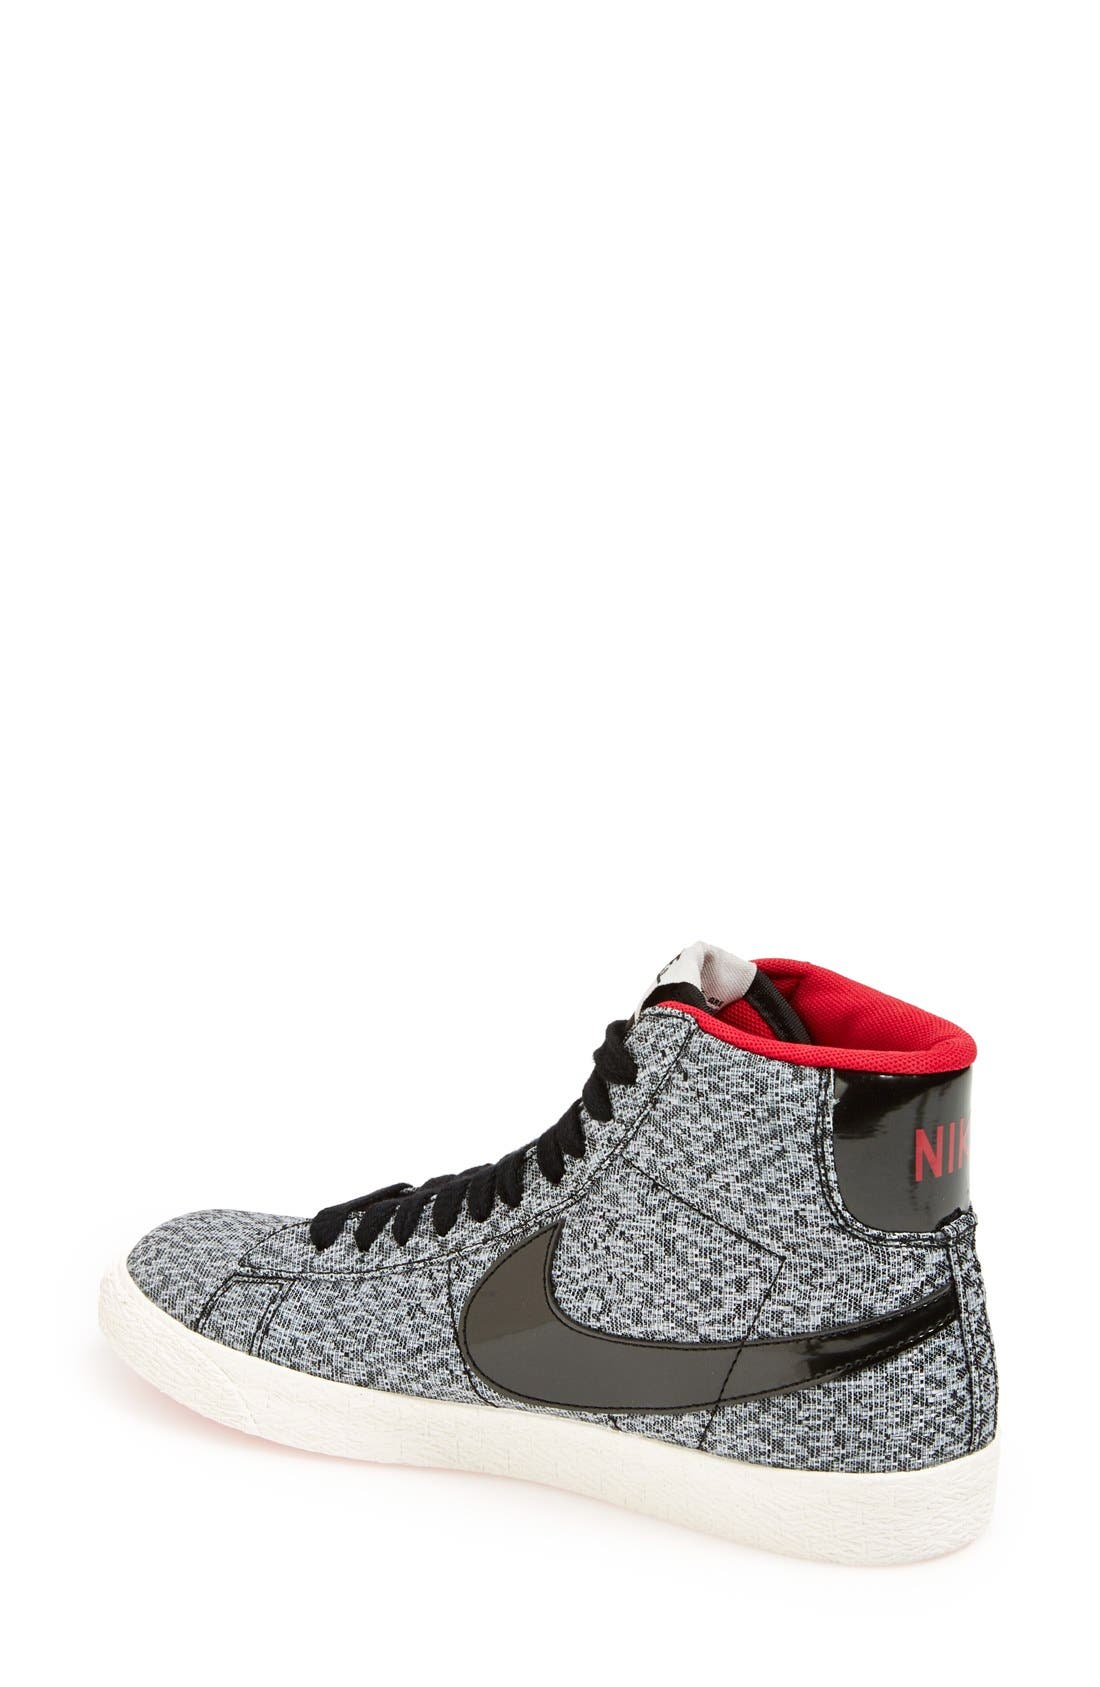 Alternate Image 2  - Nike 'Blazer Mid' Sneaker (Women)